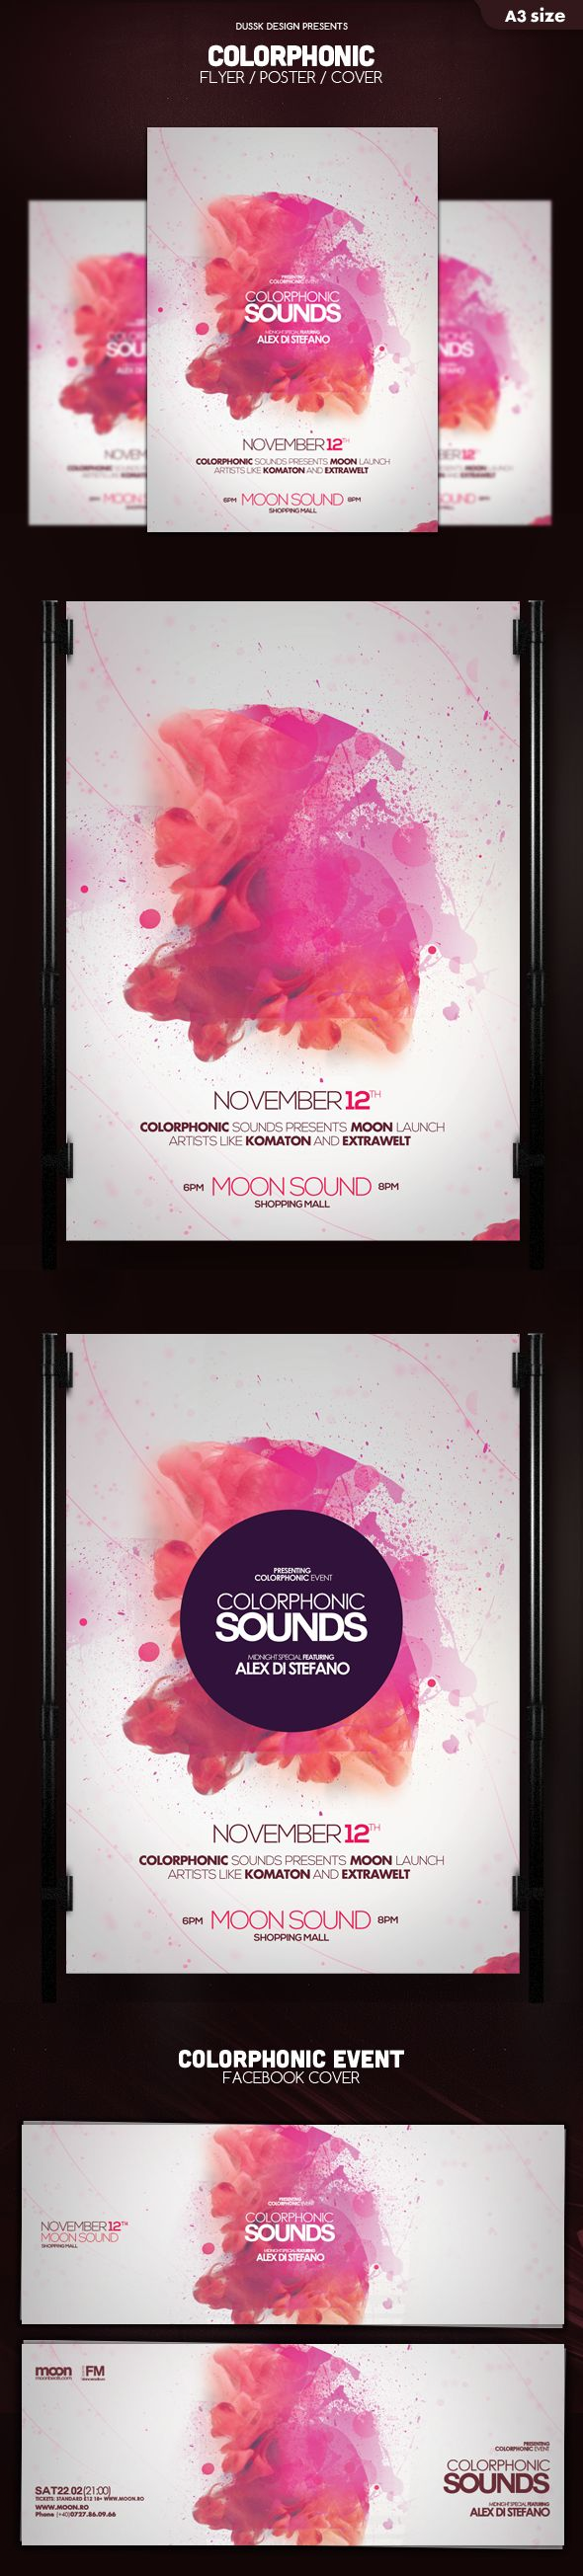 Colorphonic Poster Flyer on Behance